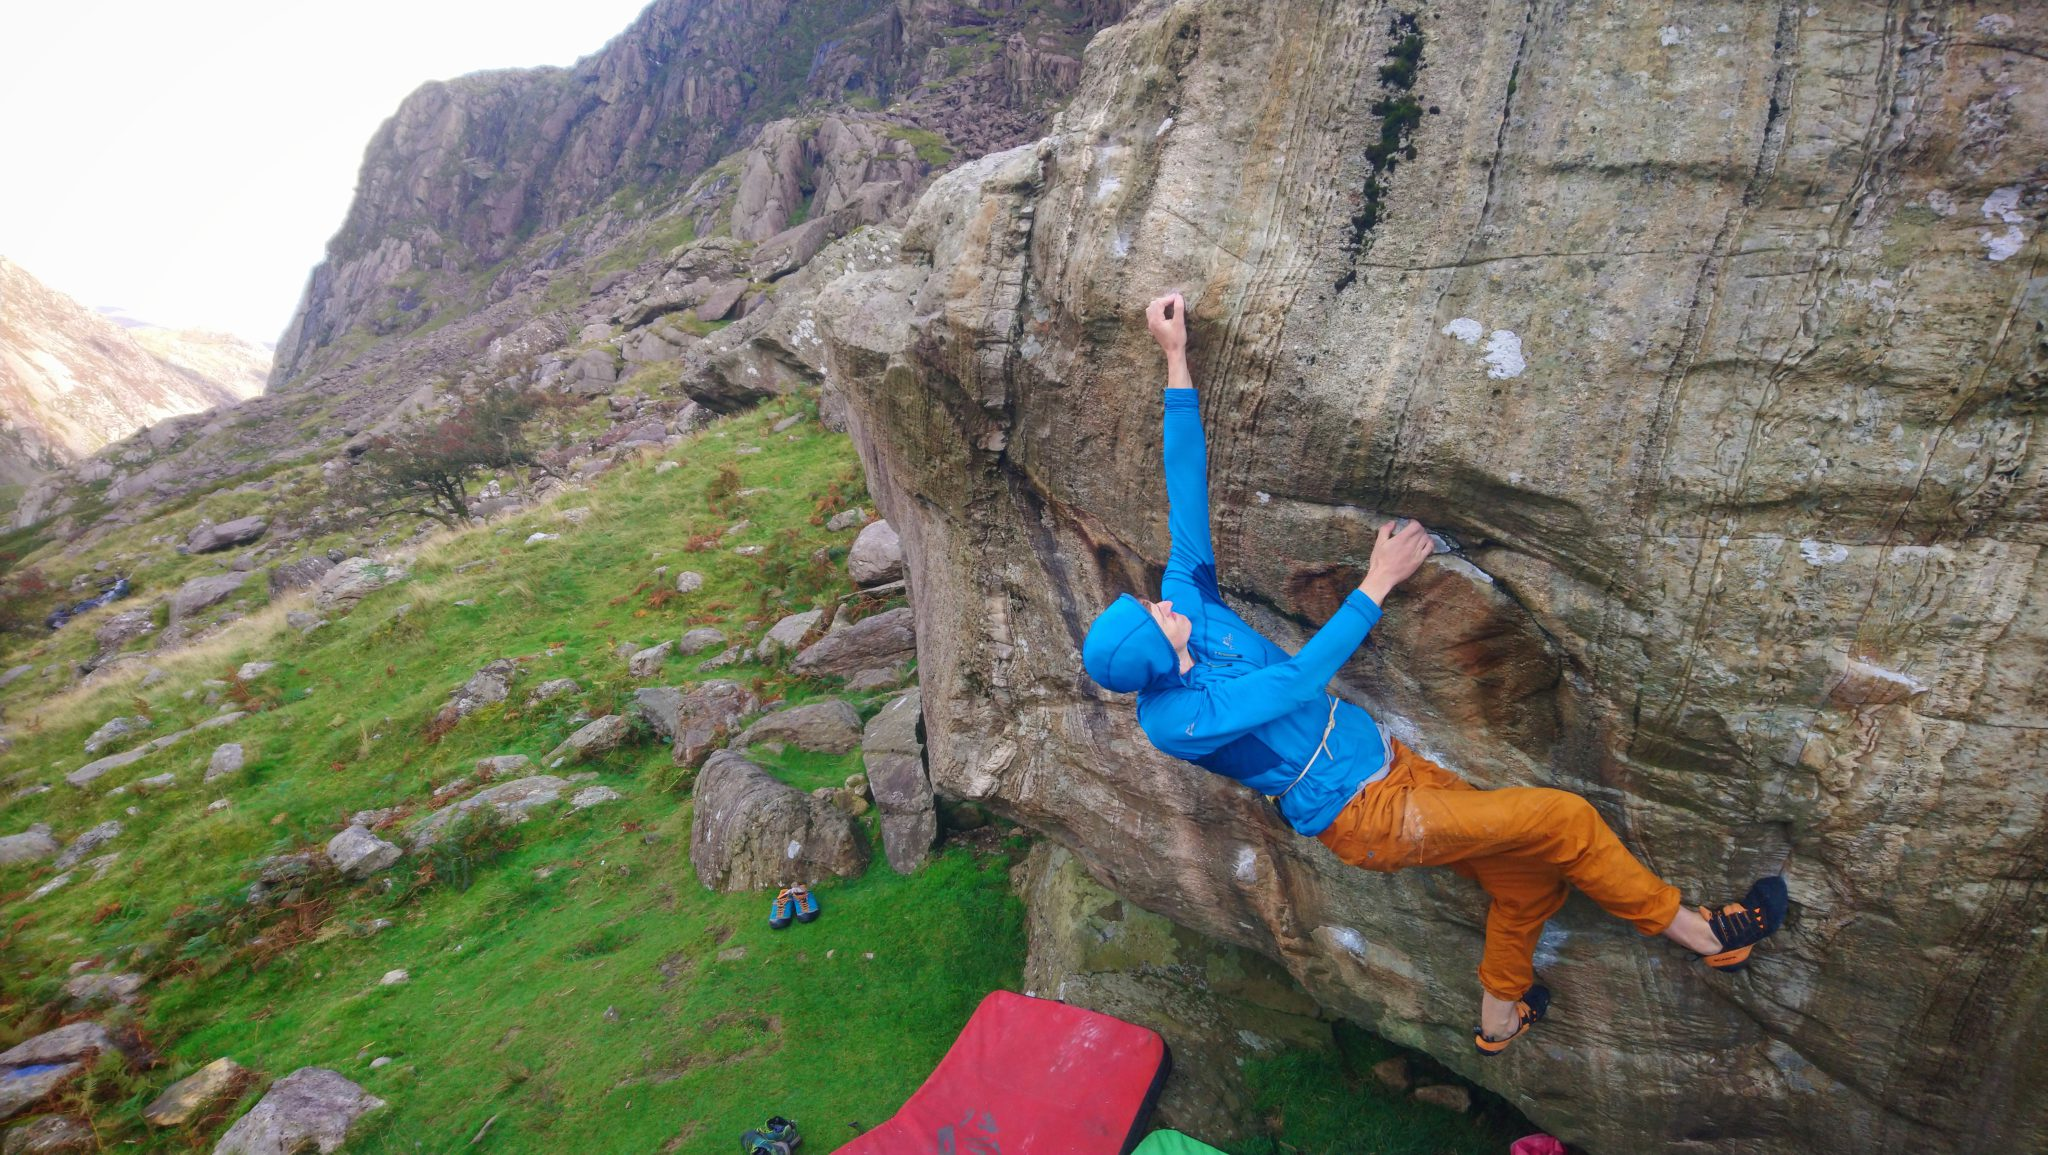 Wales bouldering experience in Snowdonia: 1:1, full day & outdoor